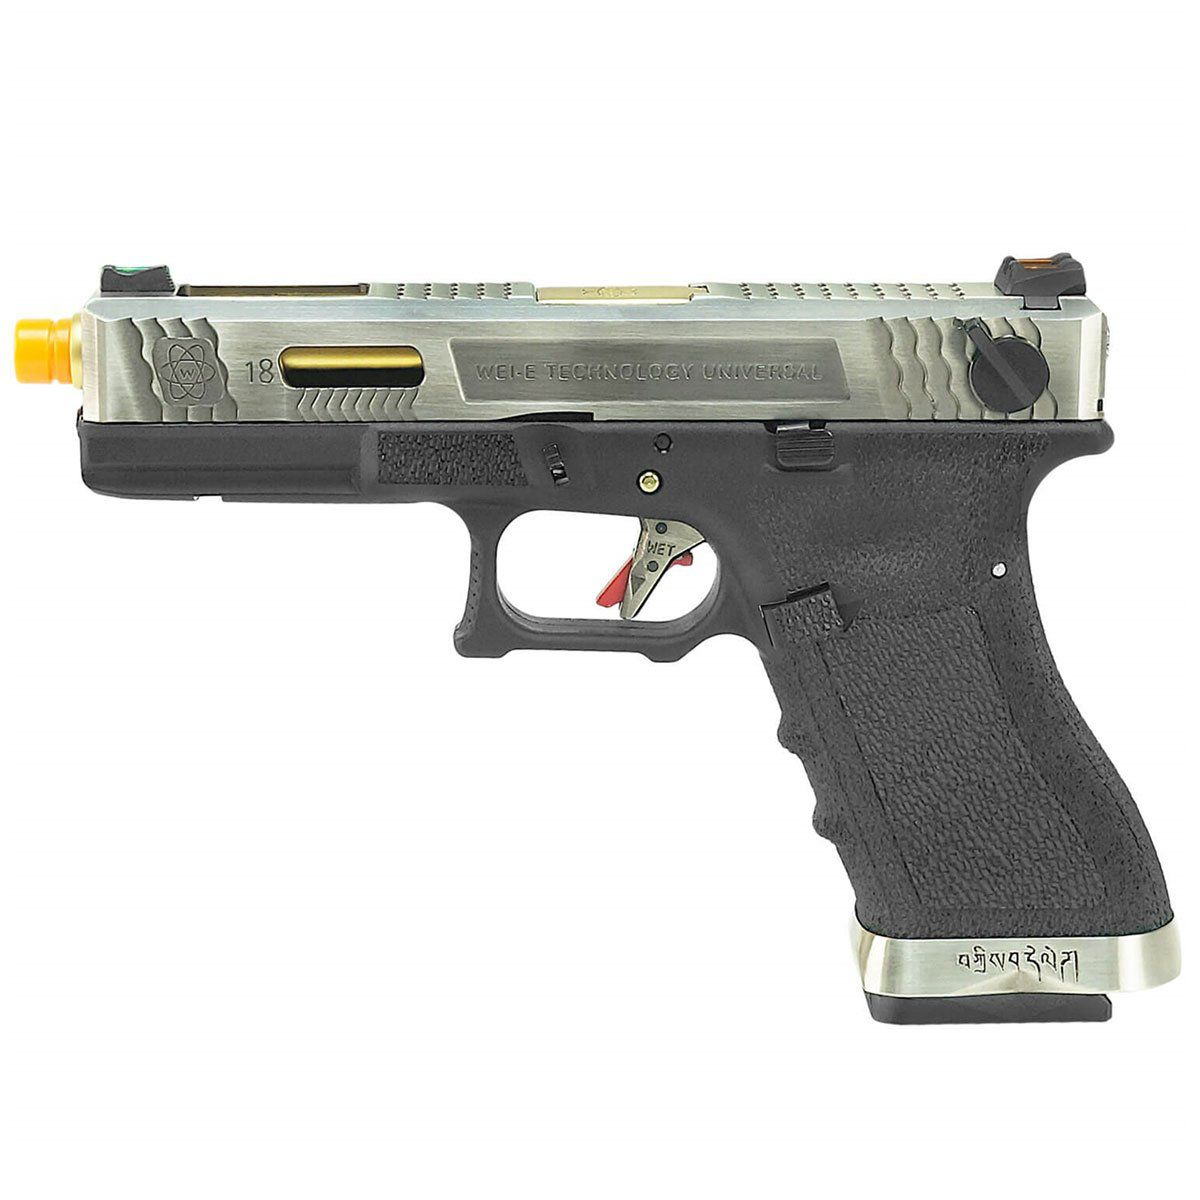 Pistola Airsoft G18C WET3 GBB - WE